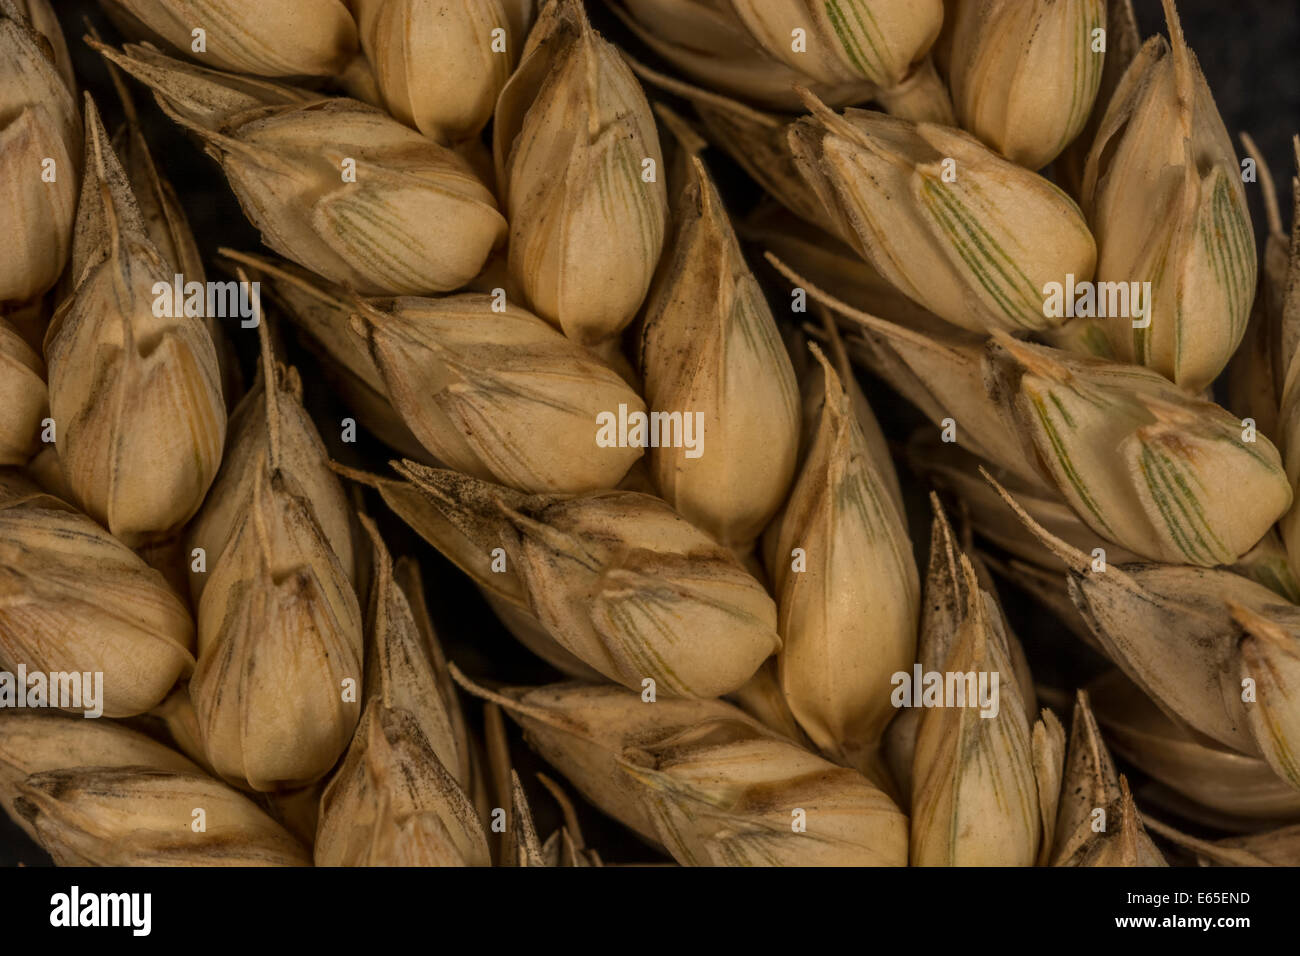 Close-up of wheat (Triticum sp.) ears (slightly green state on right hand side). Visual metaphor for concept of - Stock Image